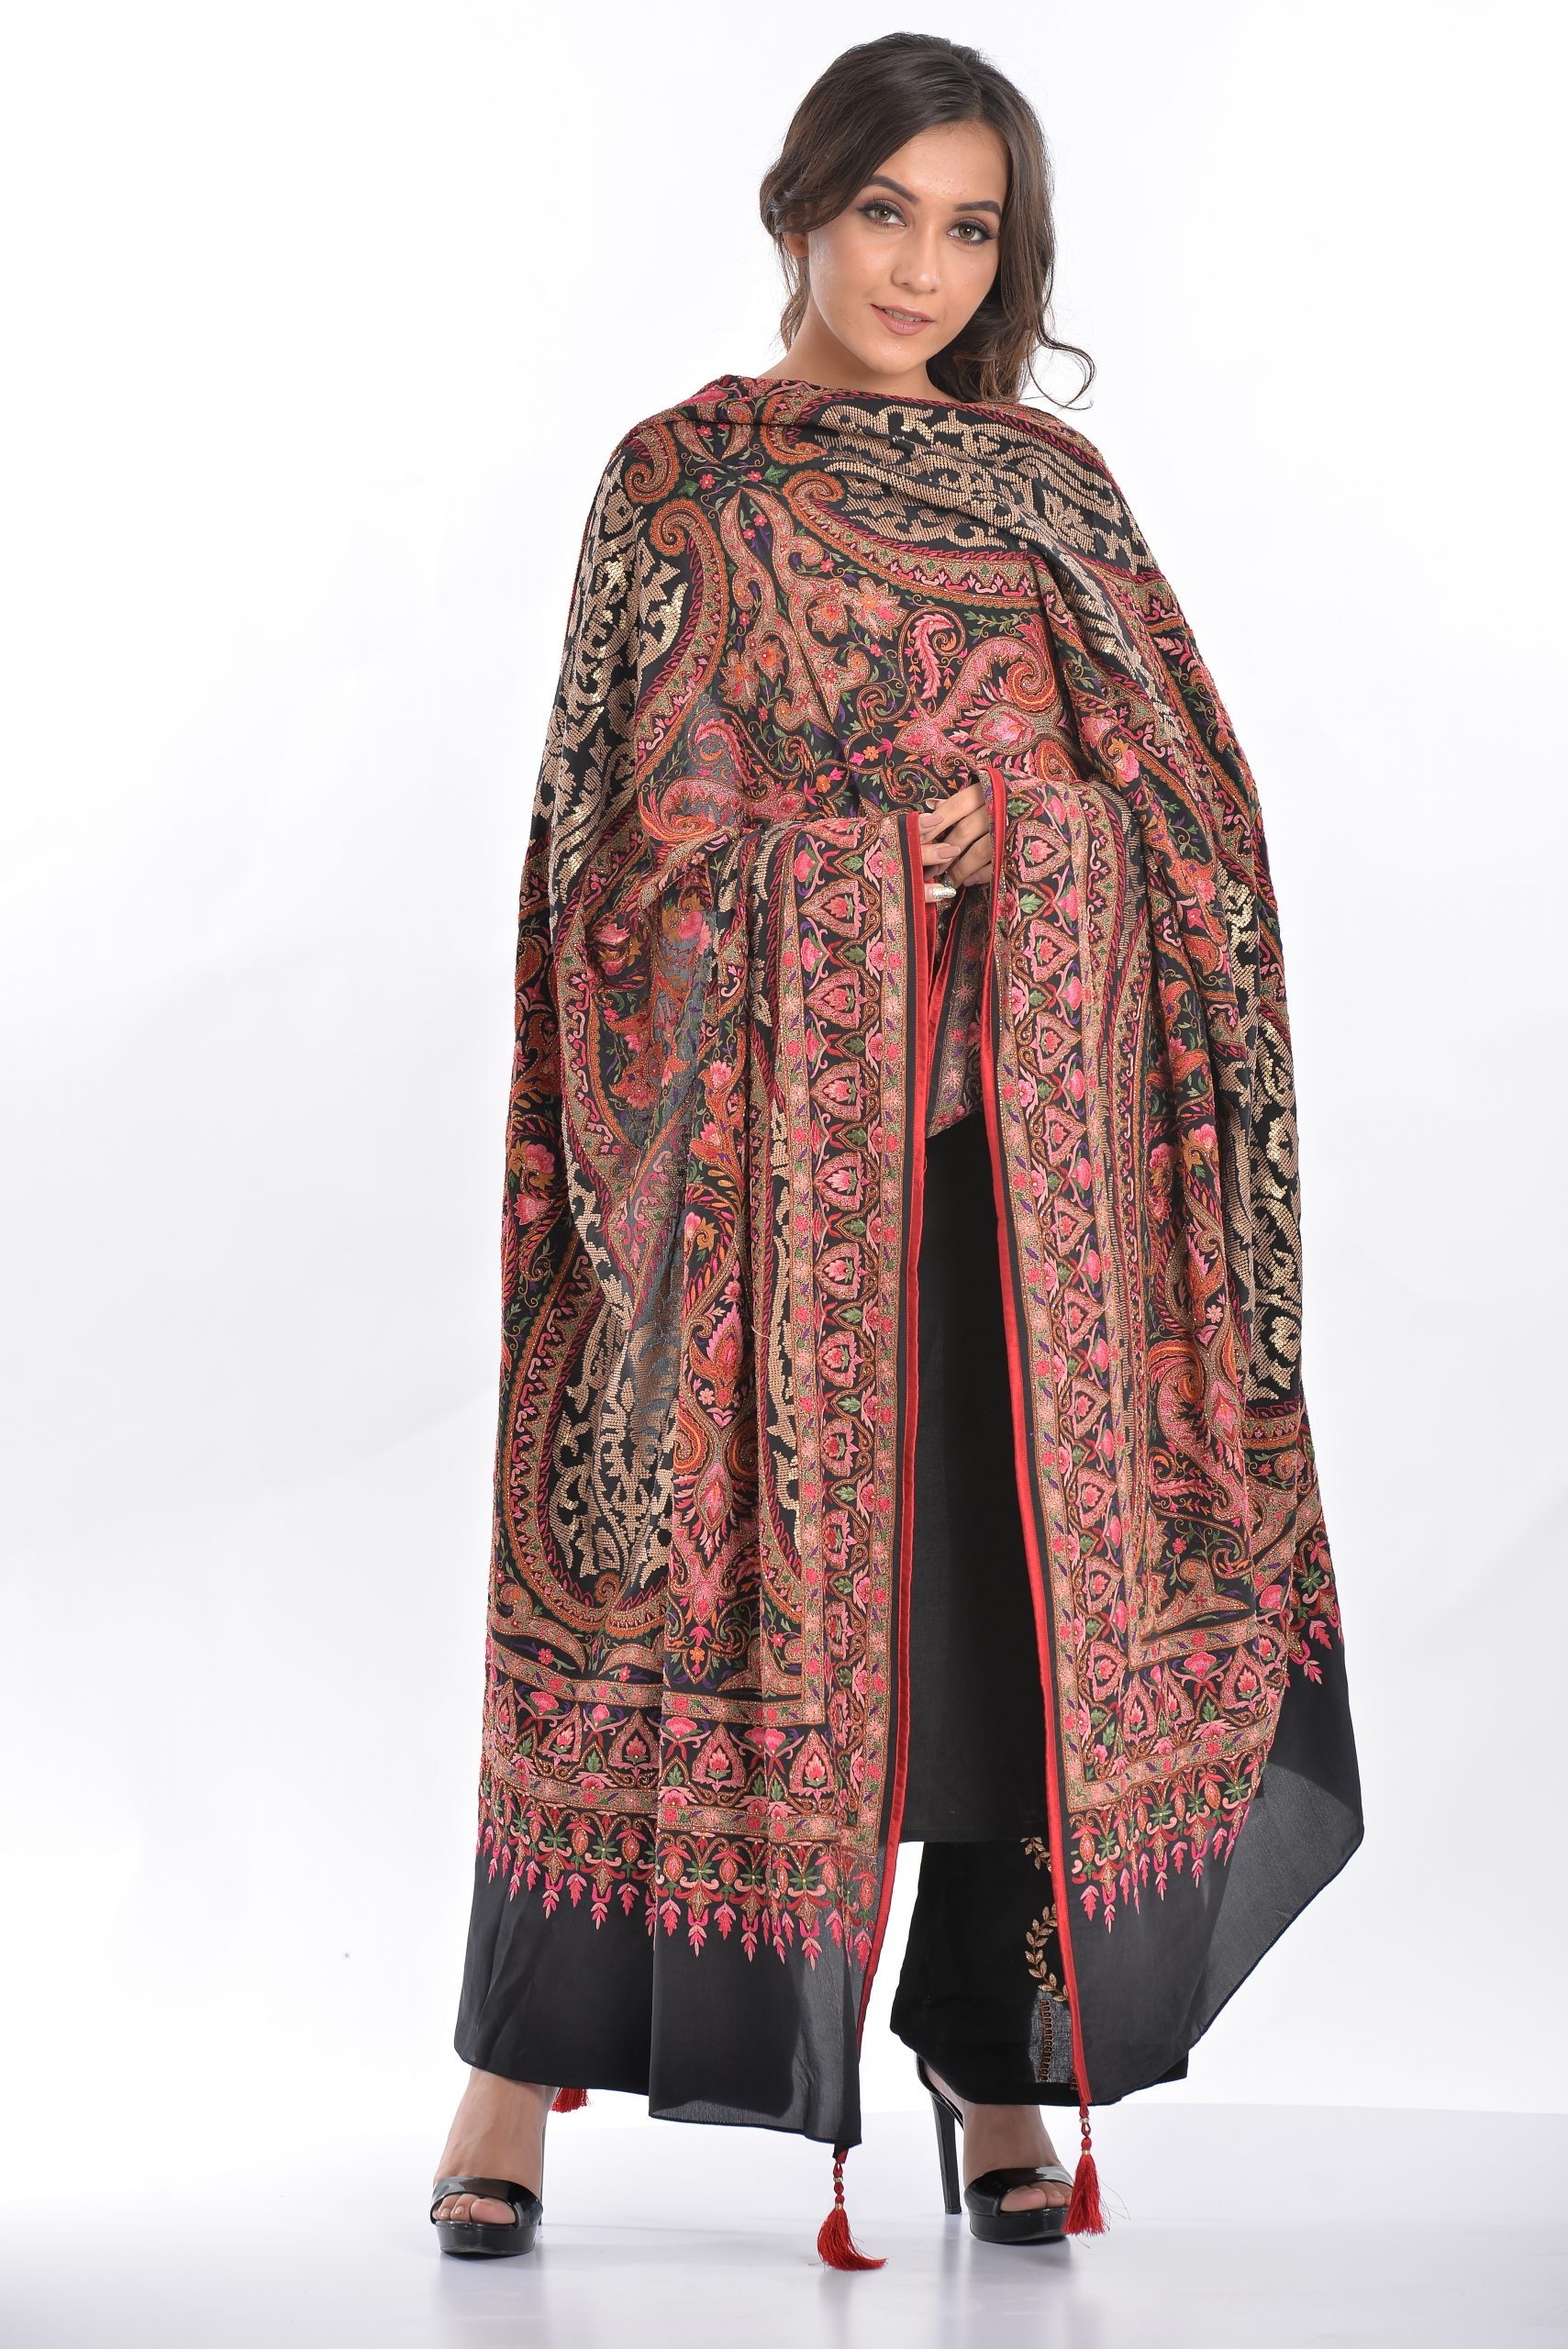 A royal affair of floral, paisley, intricate patterns of